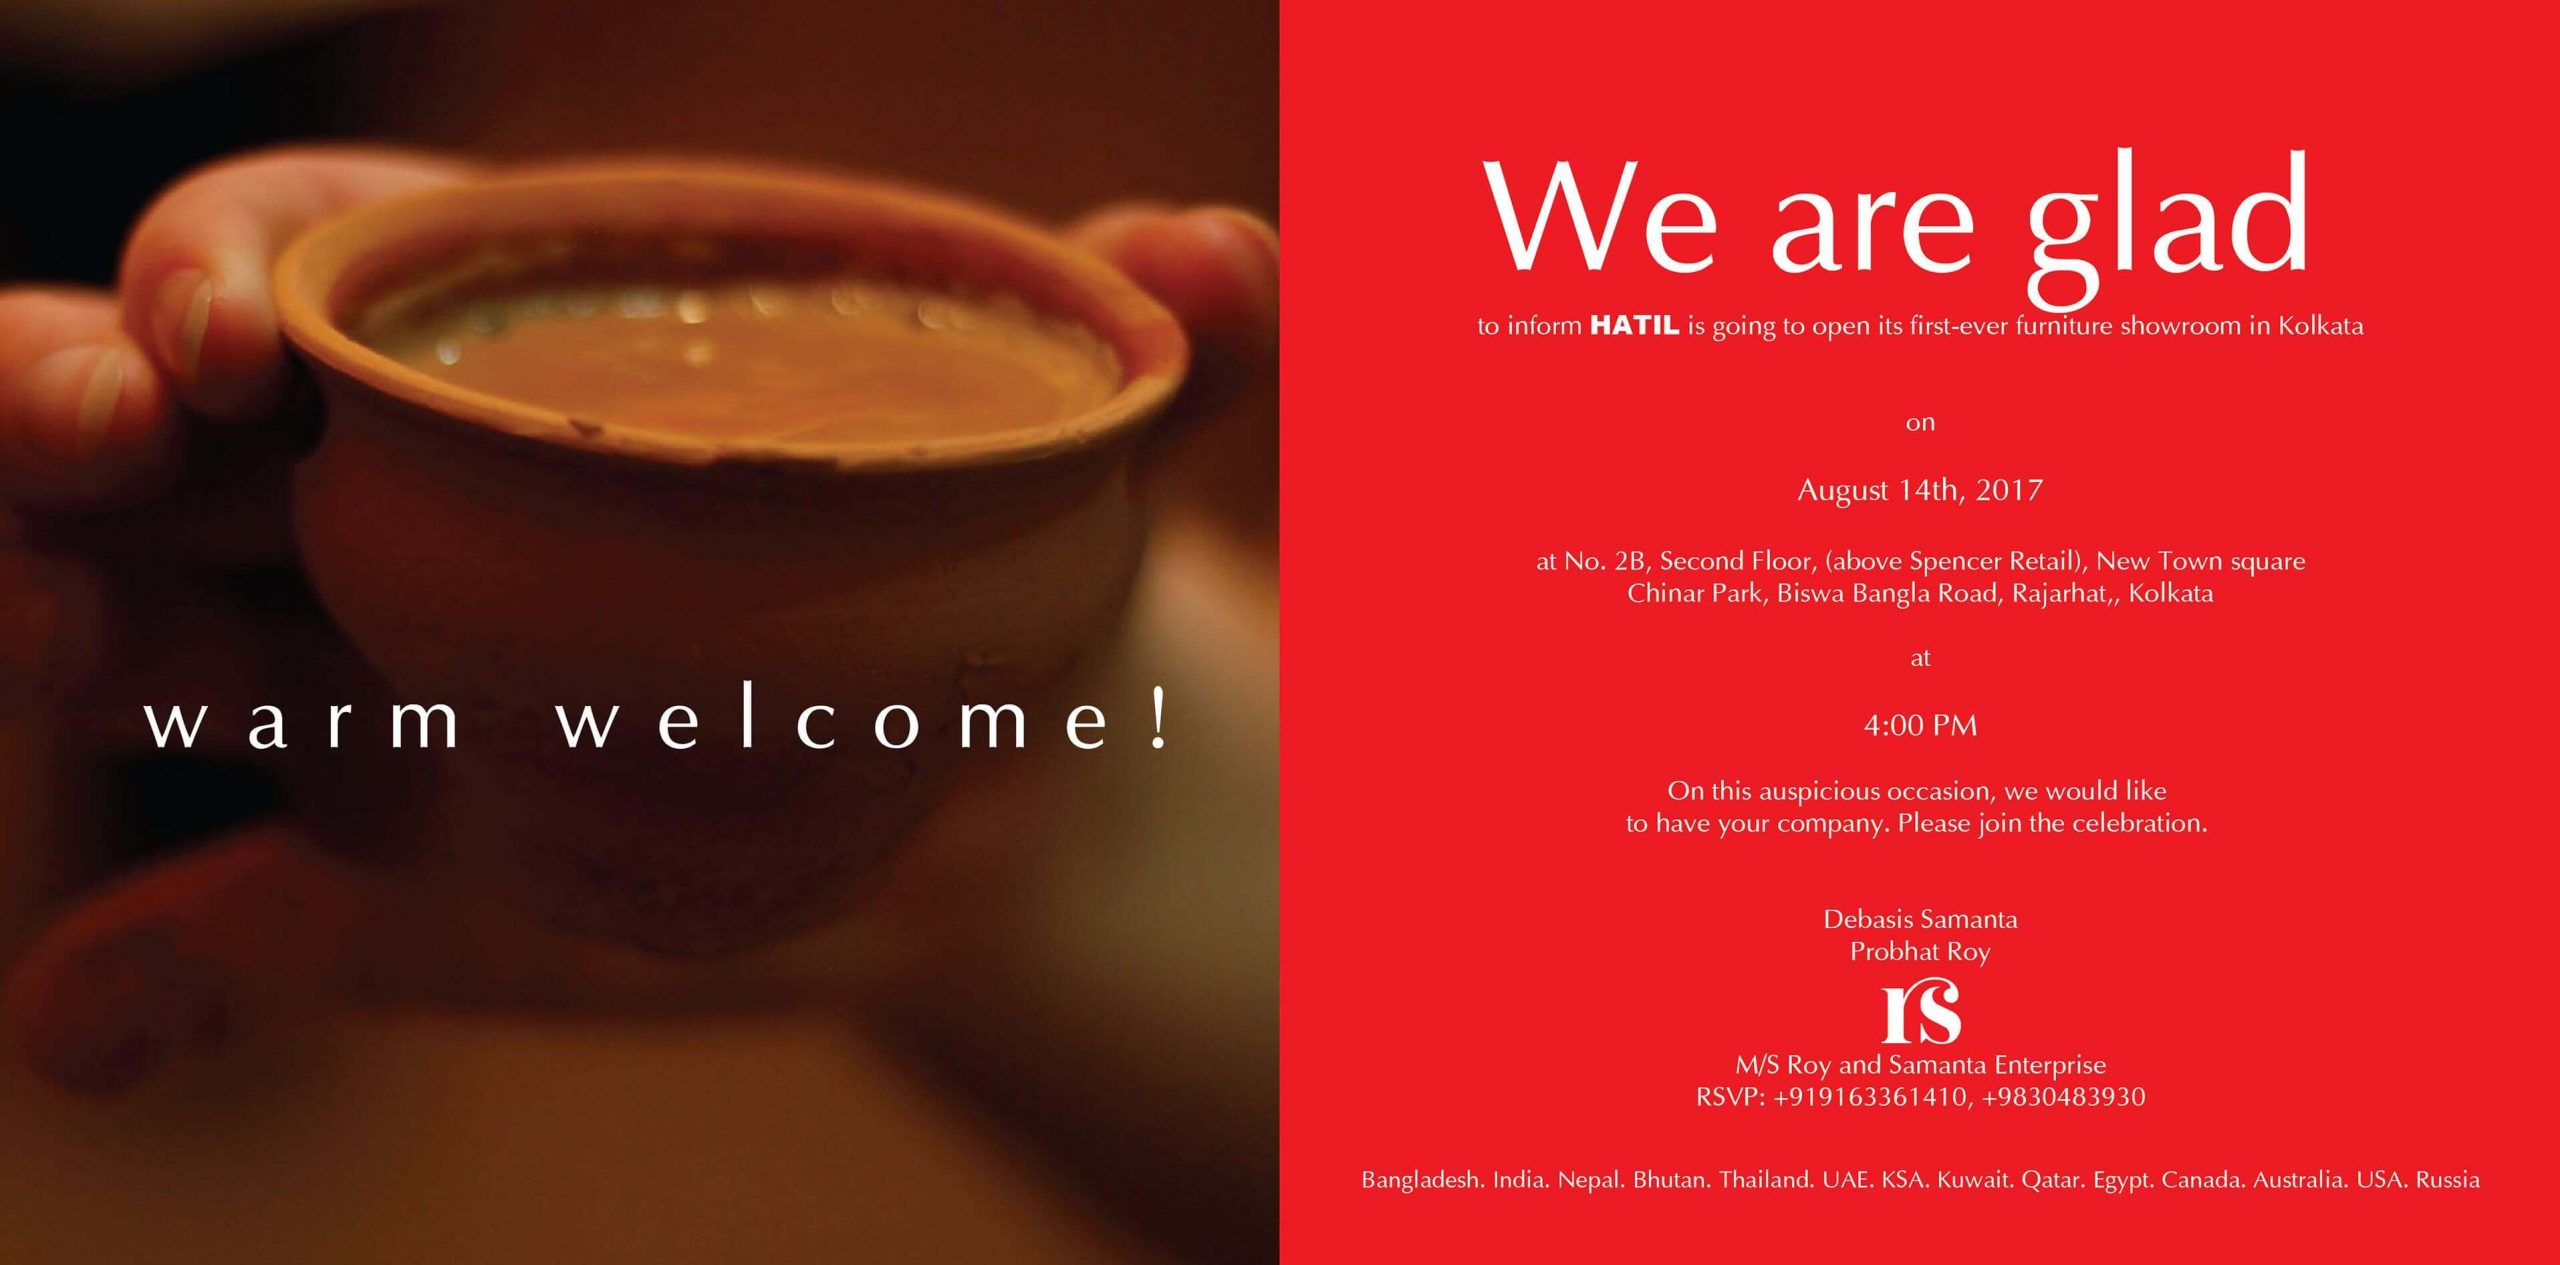 SHOWROOM OPENING INVITATION CARD - KOLKATA, INDIA